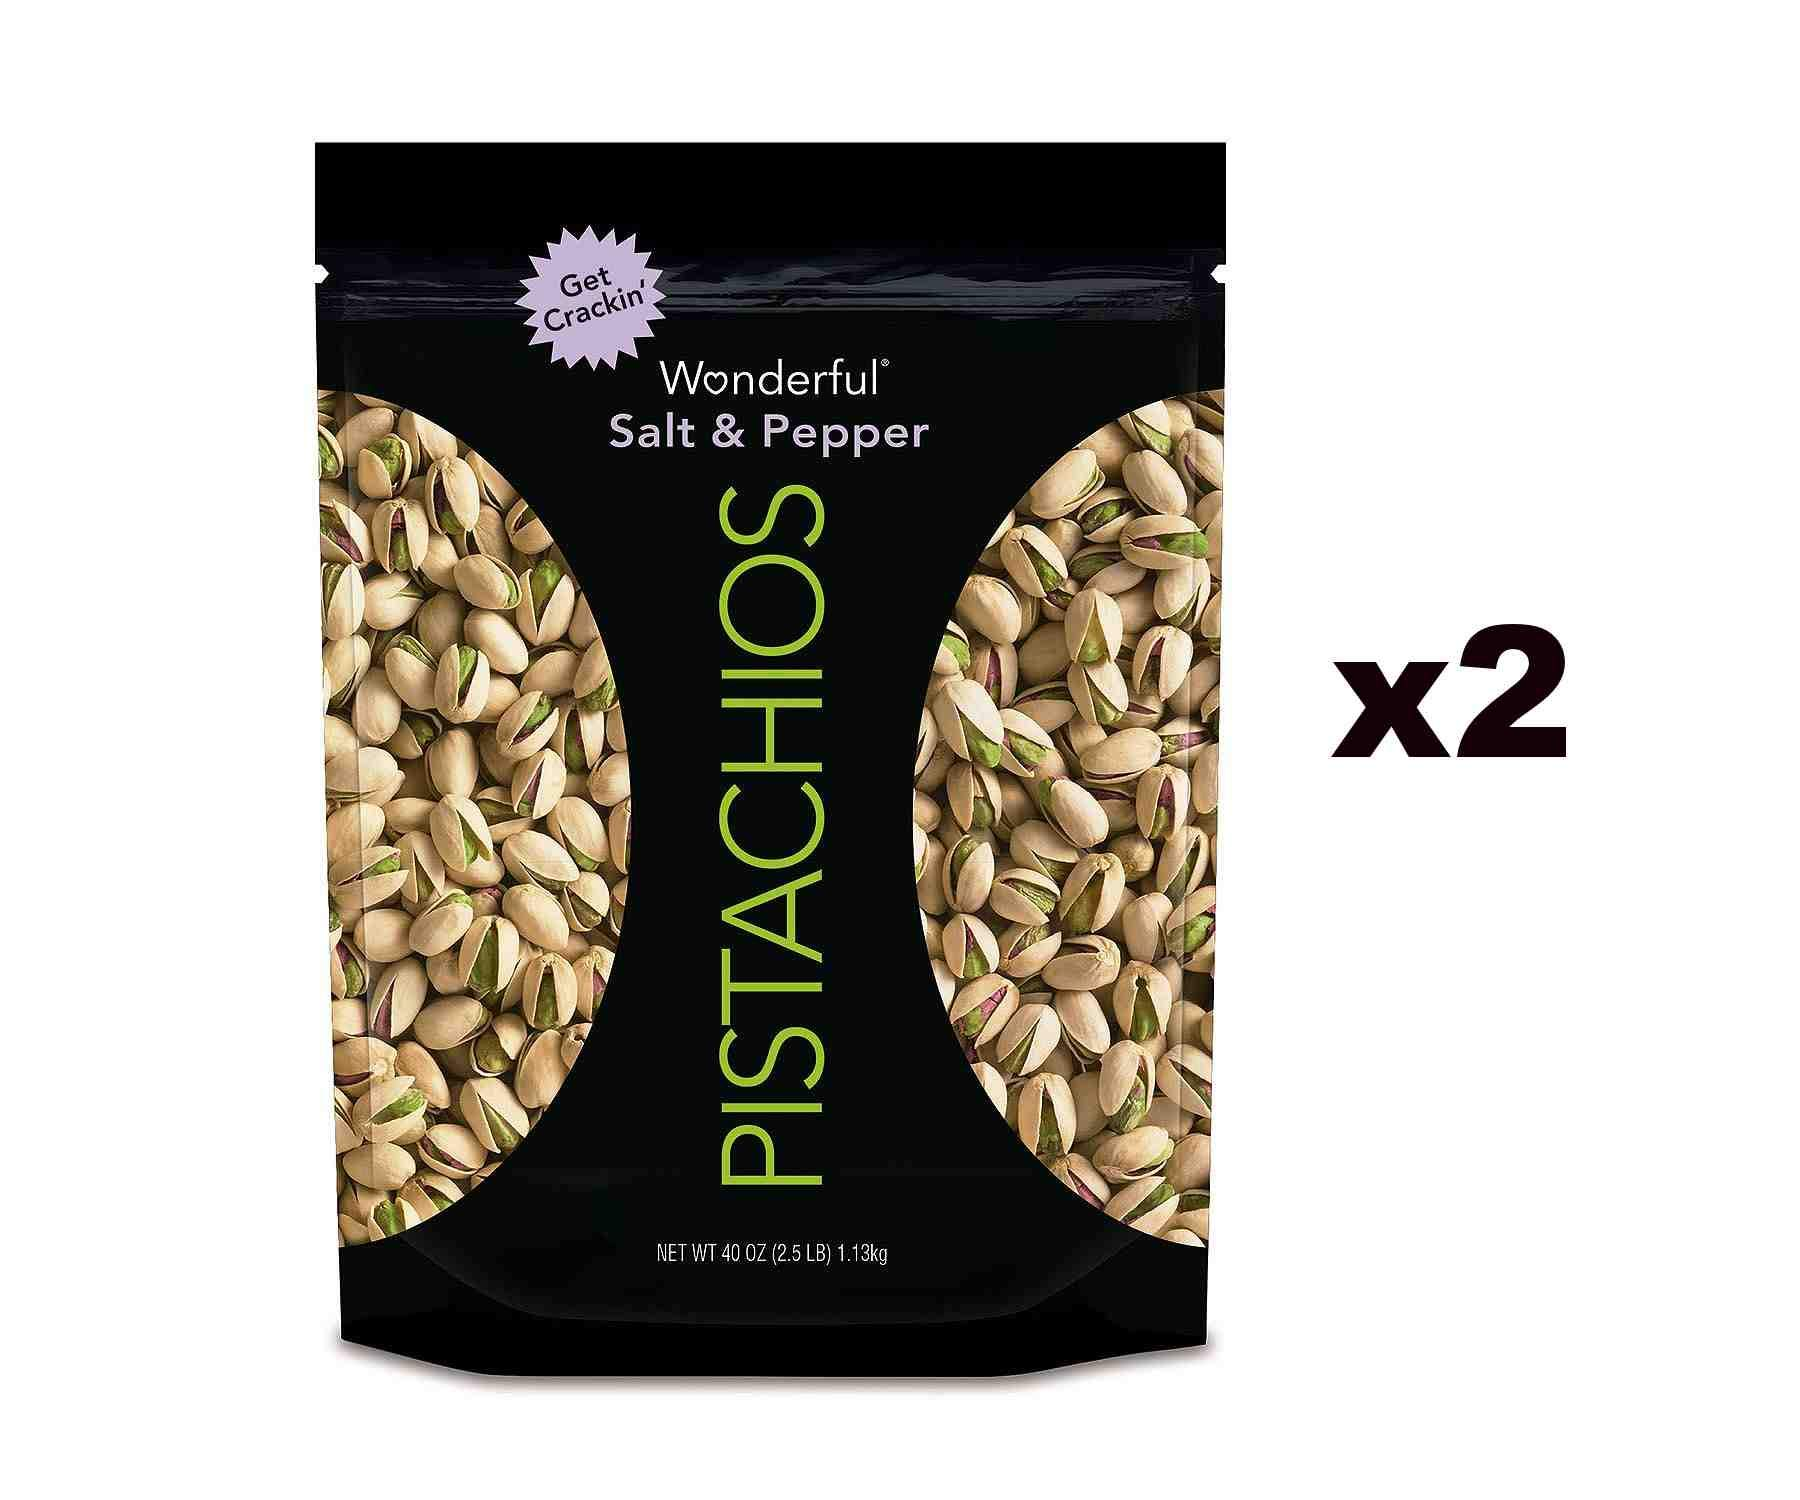 Wonderful Salt and Pepper Pistachios (80 ounces) by Wonderful